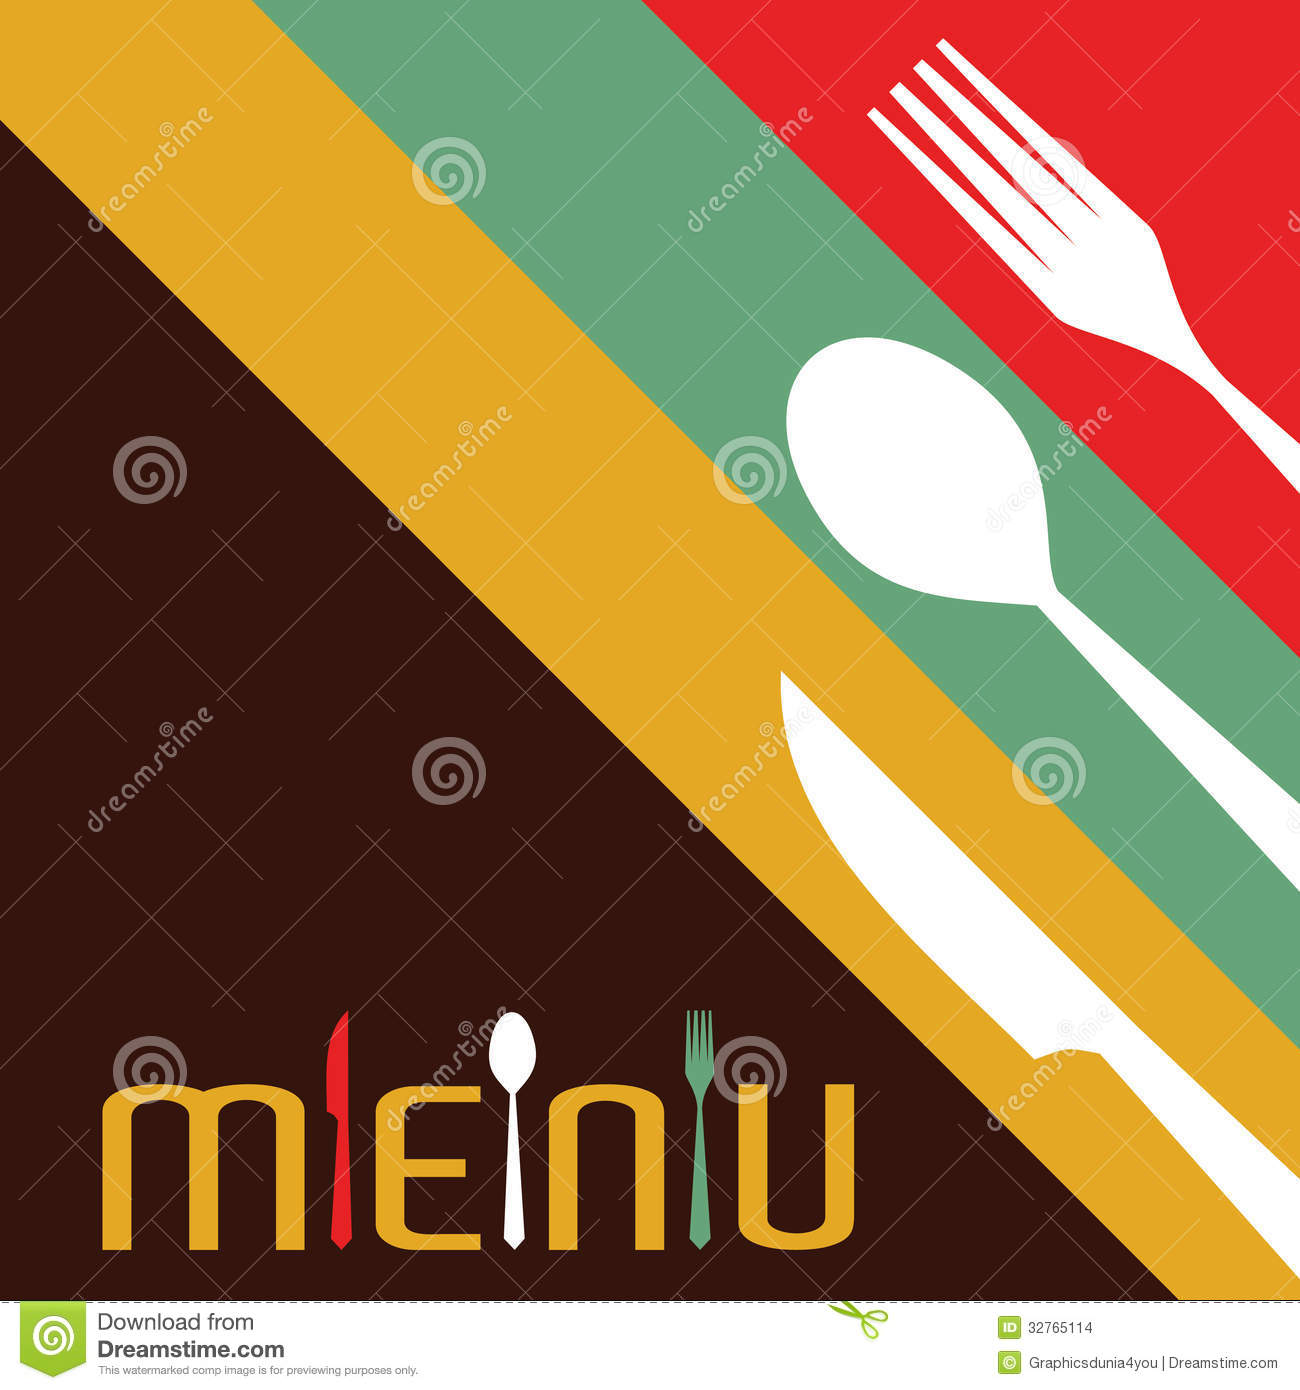 Template For Menu Card With Cutlery Stock Images Image  : template menu card cutlery vector illustration 32765114 from www.dreamstime.com size 1300 x 1390 jpeg 134kB